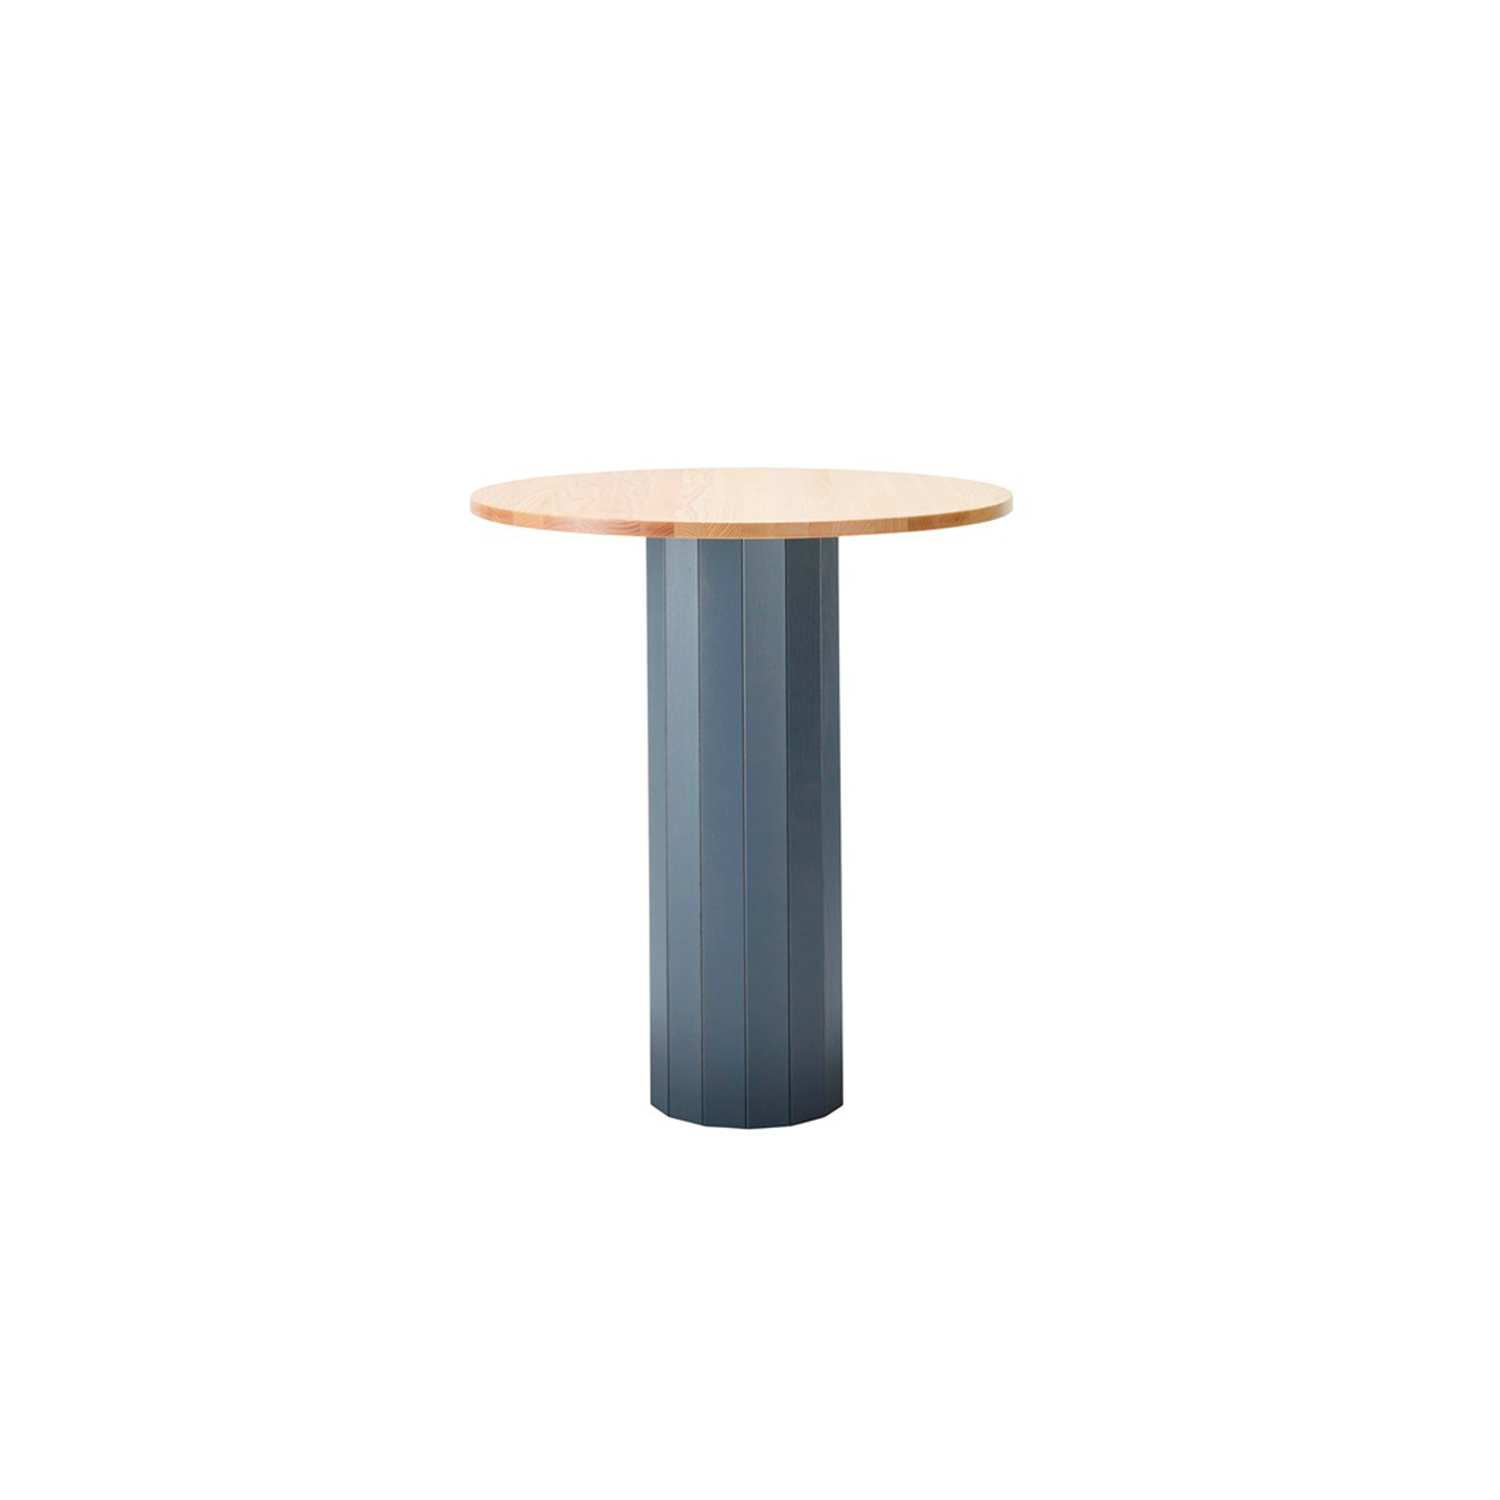 CAP High Table - The inspiration for Cap table (2014), comes from those big wooden cable drums. Its name, however, is an allusion to the cap of a mushroom, as these tables can spring up like mushrooms in different sizes, heights, colours and variations to create all sorts of lively and highly individual settings. The hollow pedestal is made of solid wood and the tabletop comes in a choice of veneer or solid oak, birch, ash, standard colors, standard stains on ash and white glazed oak or ash.  Top is also avaiable in laminate (white, black, oak, birch, ash) and black desktop. For stained finishes, we recommend a veneered top. Accessories different cable slots which can be mounted on table top or pedestal. Cap is an ideal solution in settings where durability is a key concern. The stability and balance of the construction is achieved by adding just the right amount of stone dust inside the pillar, according to the size and diameter of the tabletop.  Please enquire for more details and configurations. | Matter of Stuff